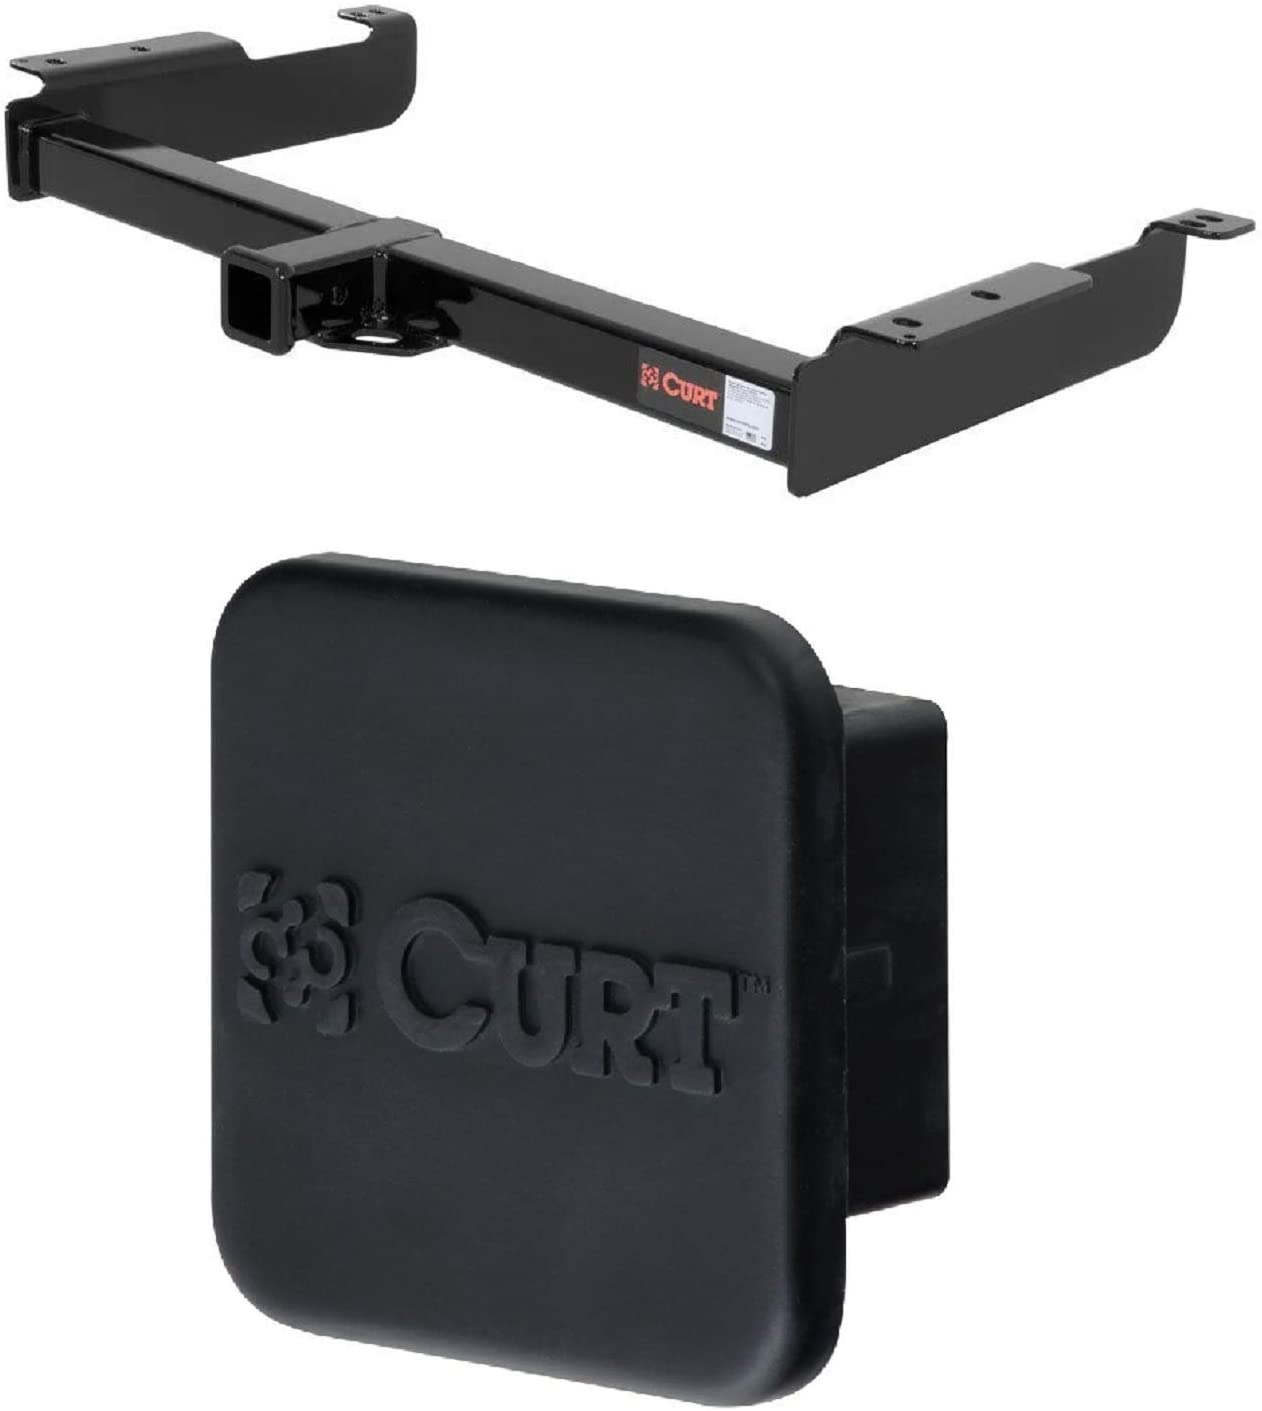 Curt 13040 22272 Class 3 Trailer Hitch with 2 Inch Receiver and 2 Inch Rubber Hitch Tube Cover Bundle for Express and Savana 1500 2500 3500